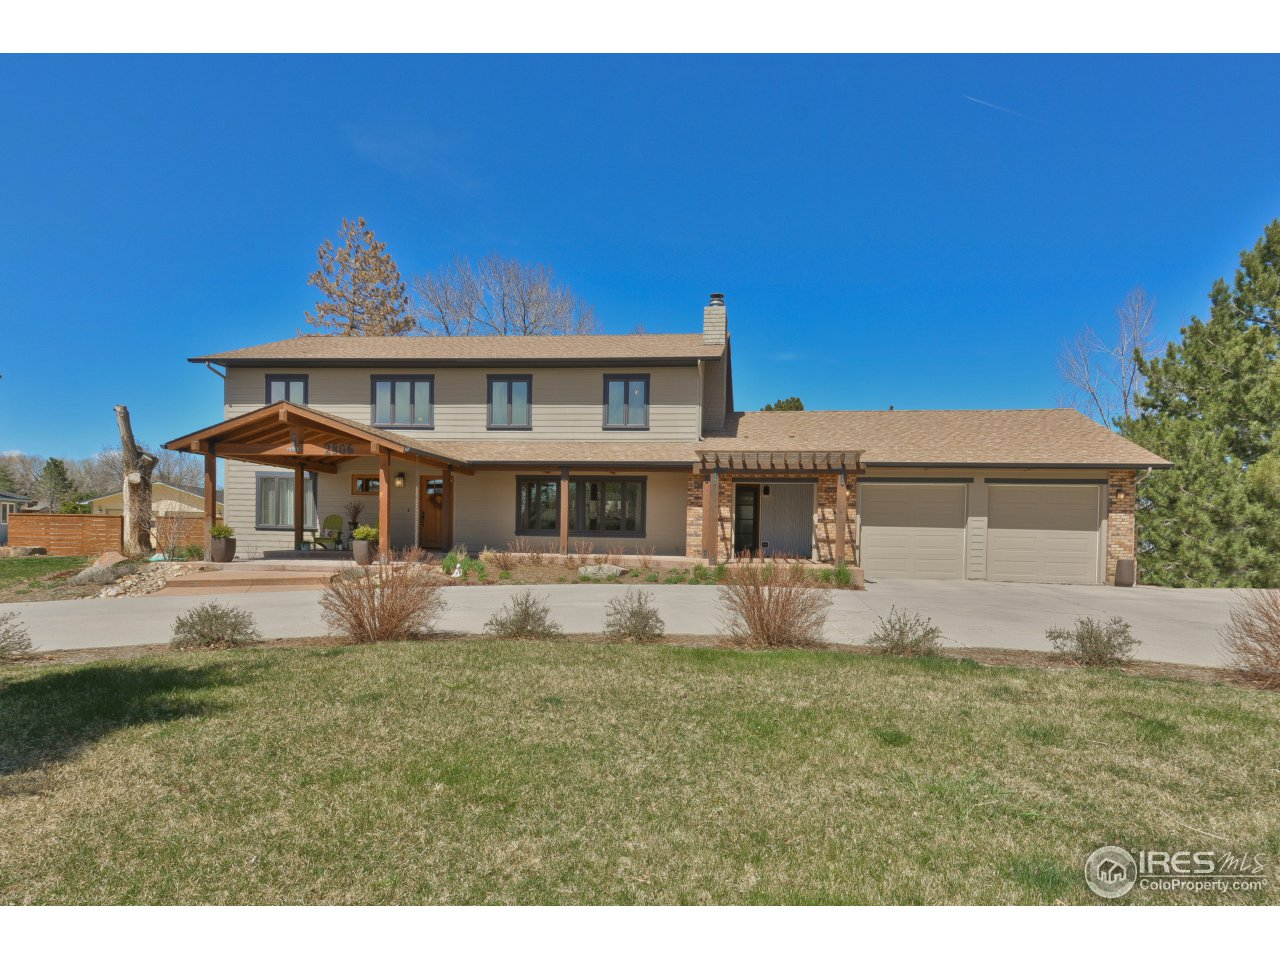 2806 Madison Dr., Longmont $798,000